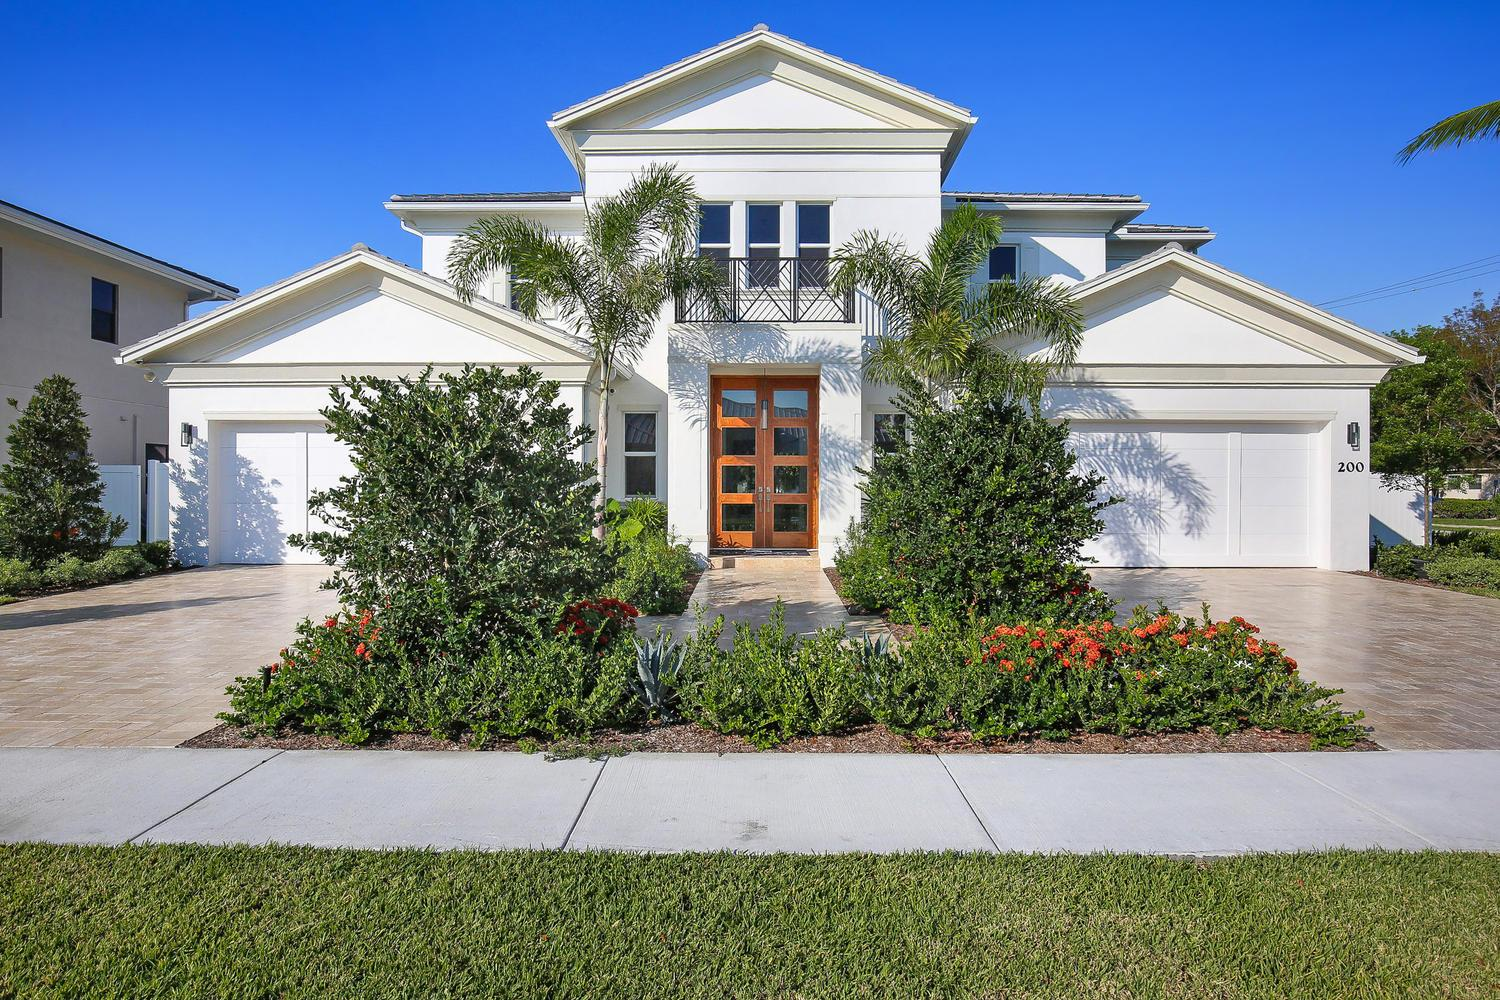 Photo of Boca Collection in Boca Raton, FL 33427